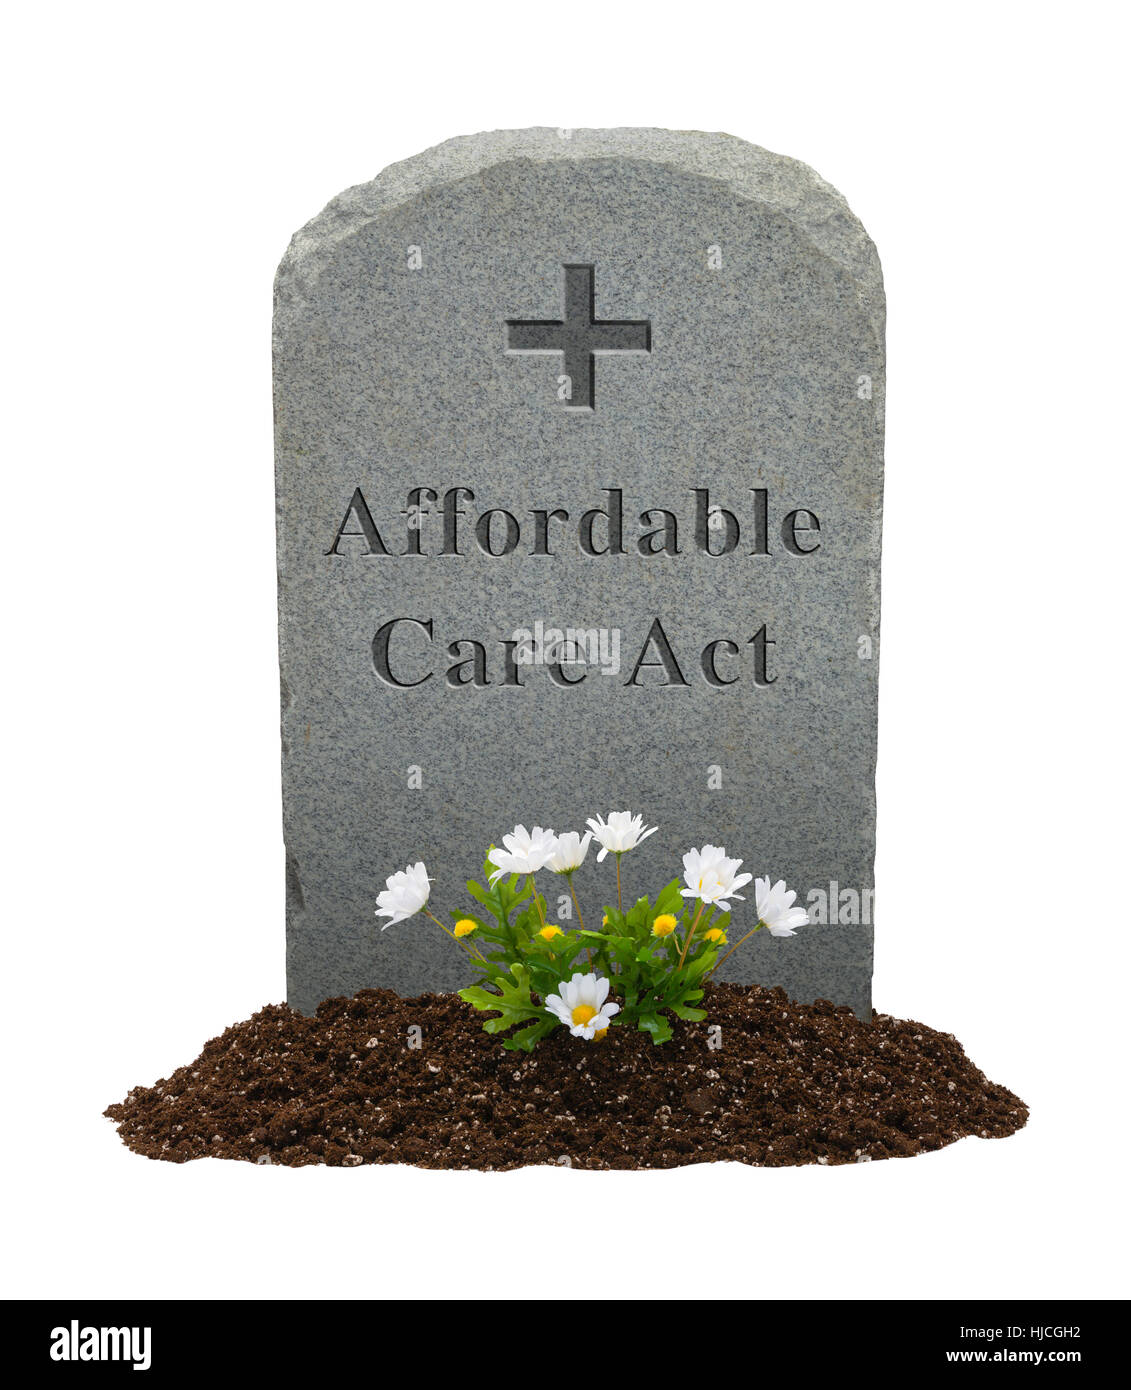 Affordable Care Act Gravestone Isolated on White Background. - Stock Image